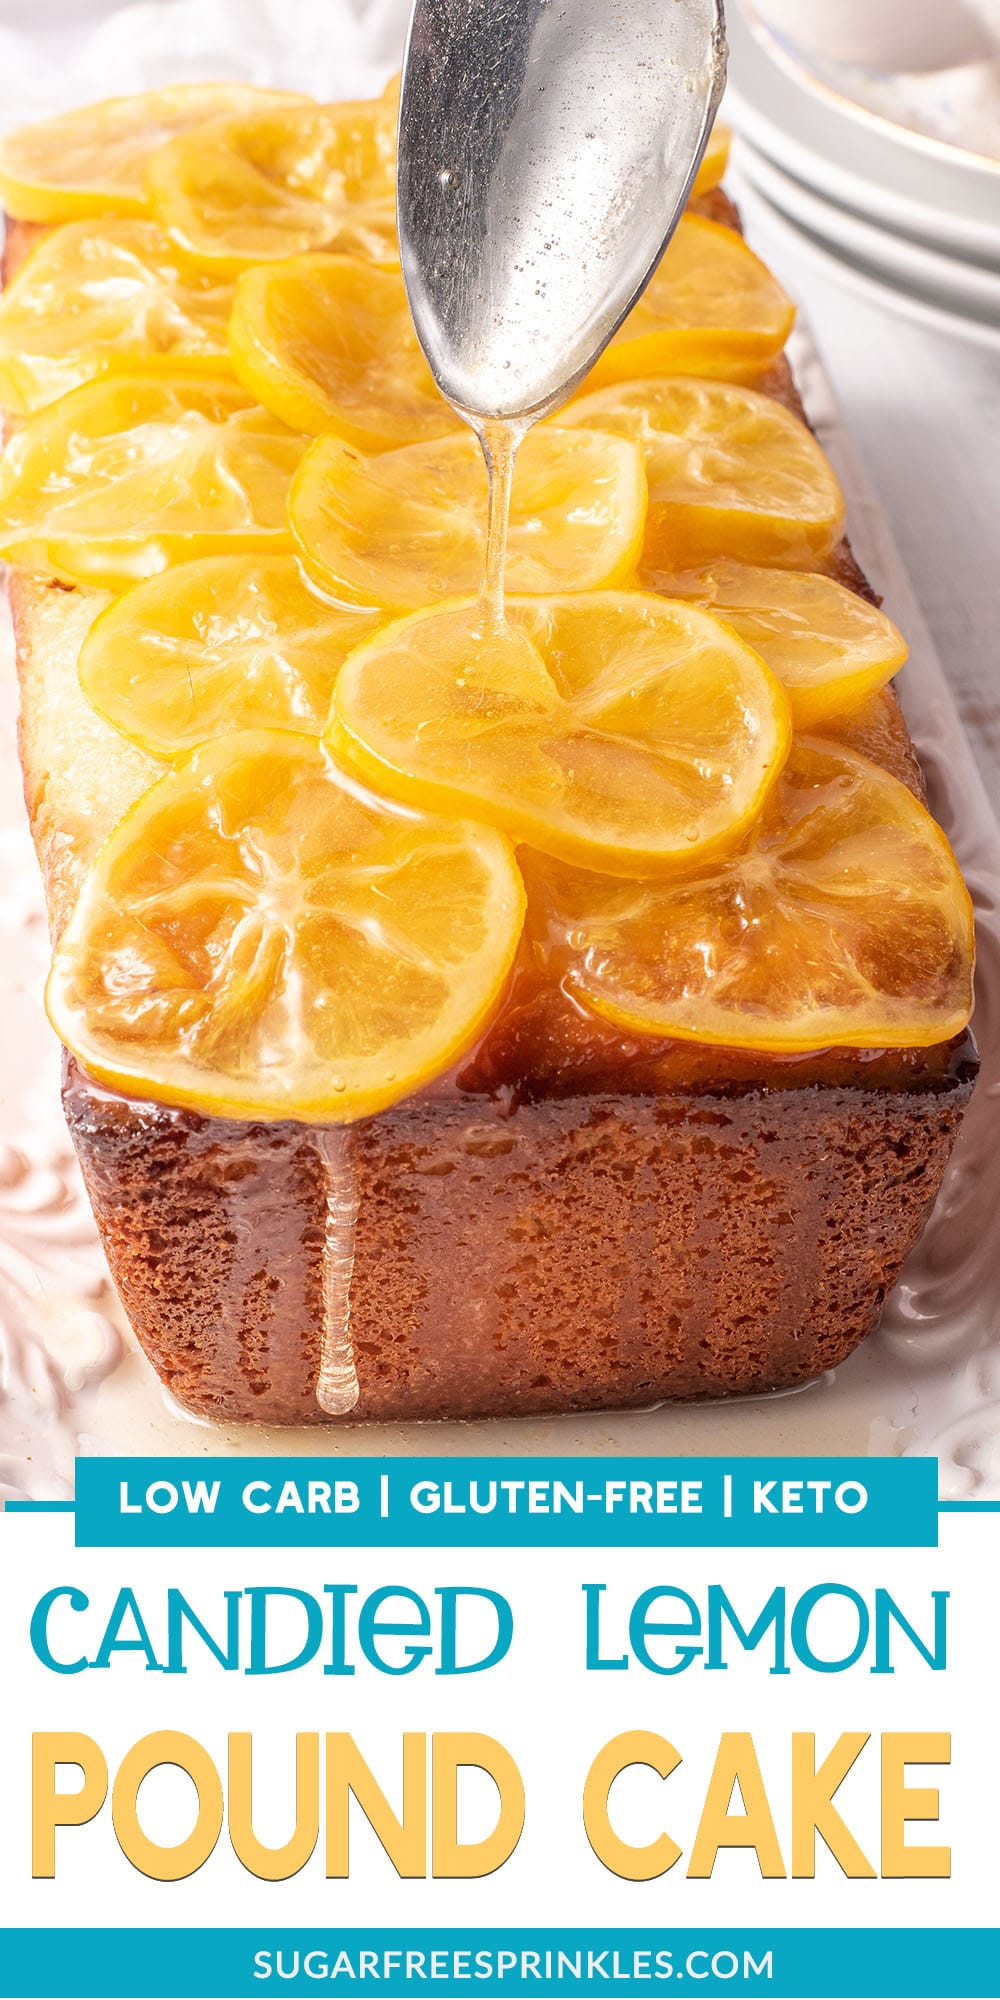 Check out this low carb lemon pound cake with a candy lemon topping. This cake is sweet and moist, dripping with thick lemon syrup and topped with sticky marmalade lemons. You will want to add this low carb baking recipe to your list! The cake is also keto-friendly, and gluten-free.